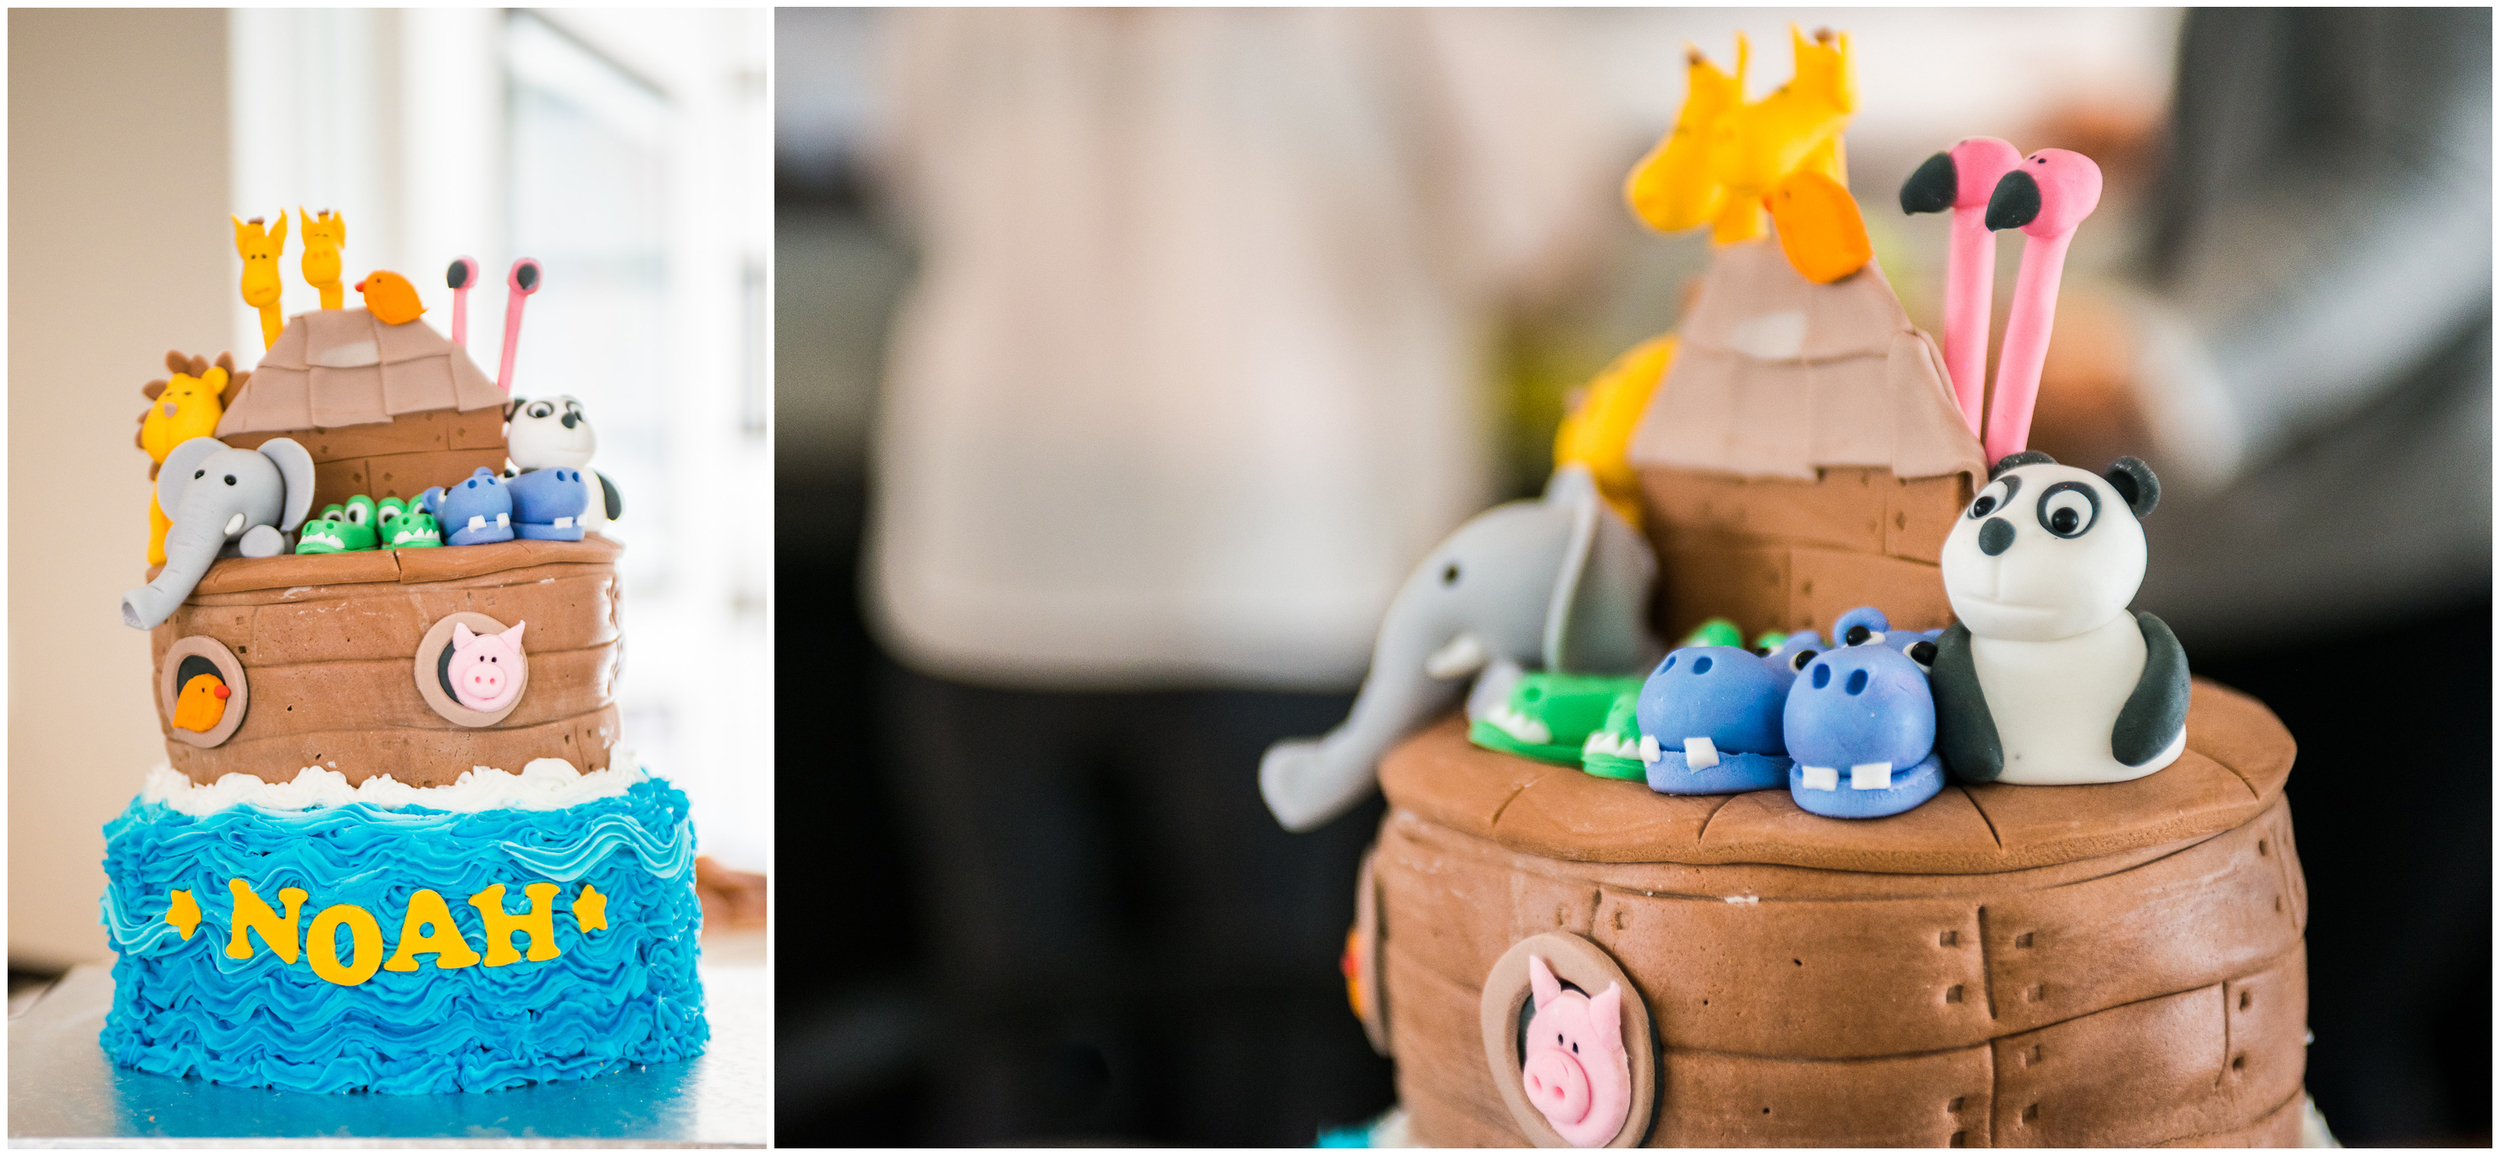 The cutest cake ever. I mean just look at those animals.